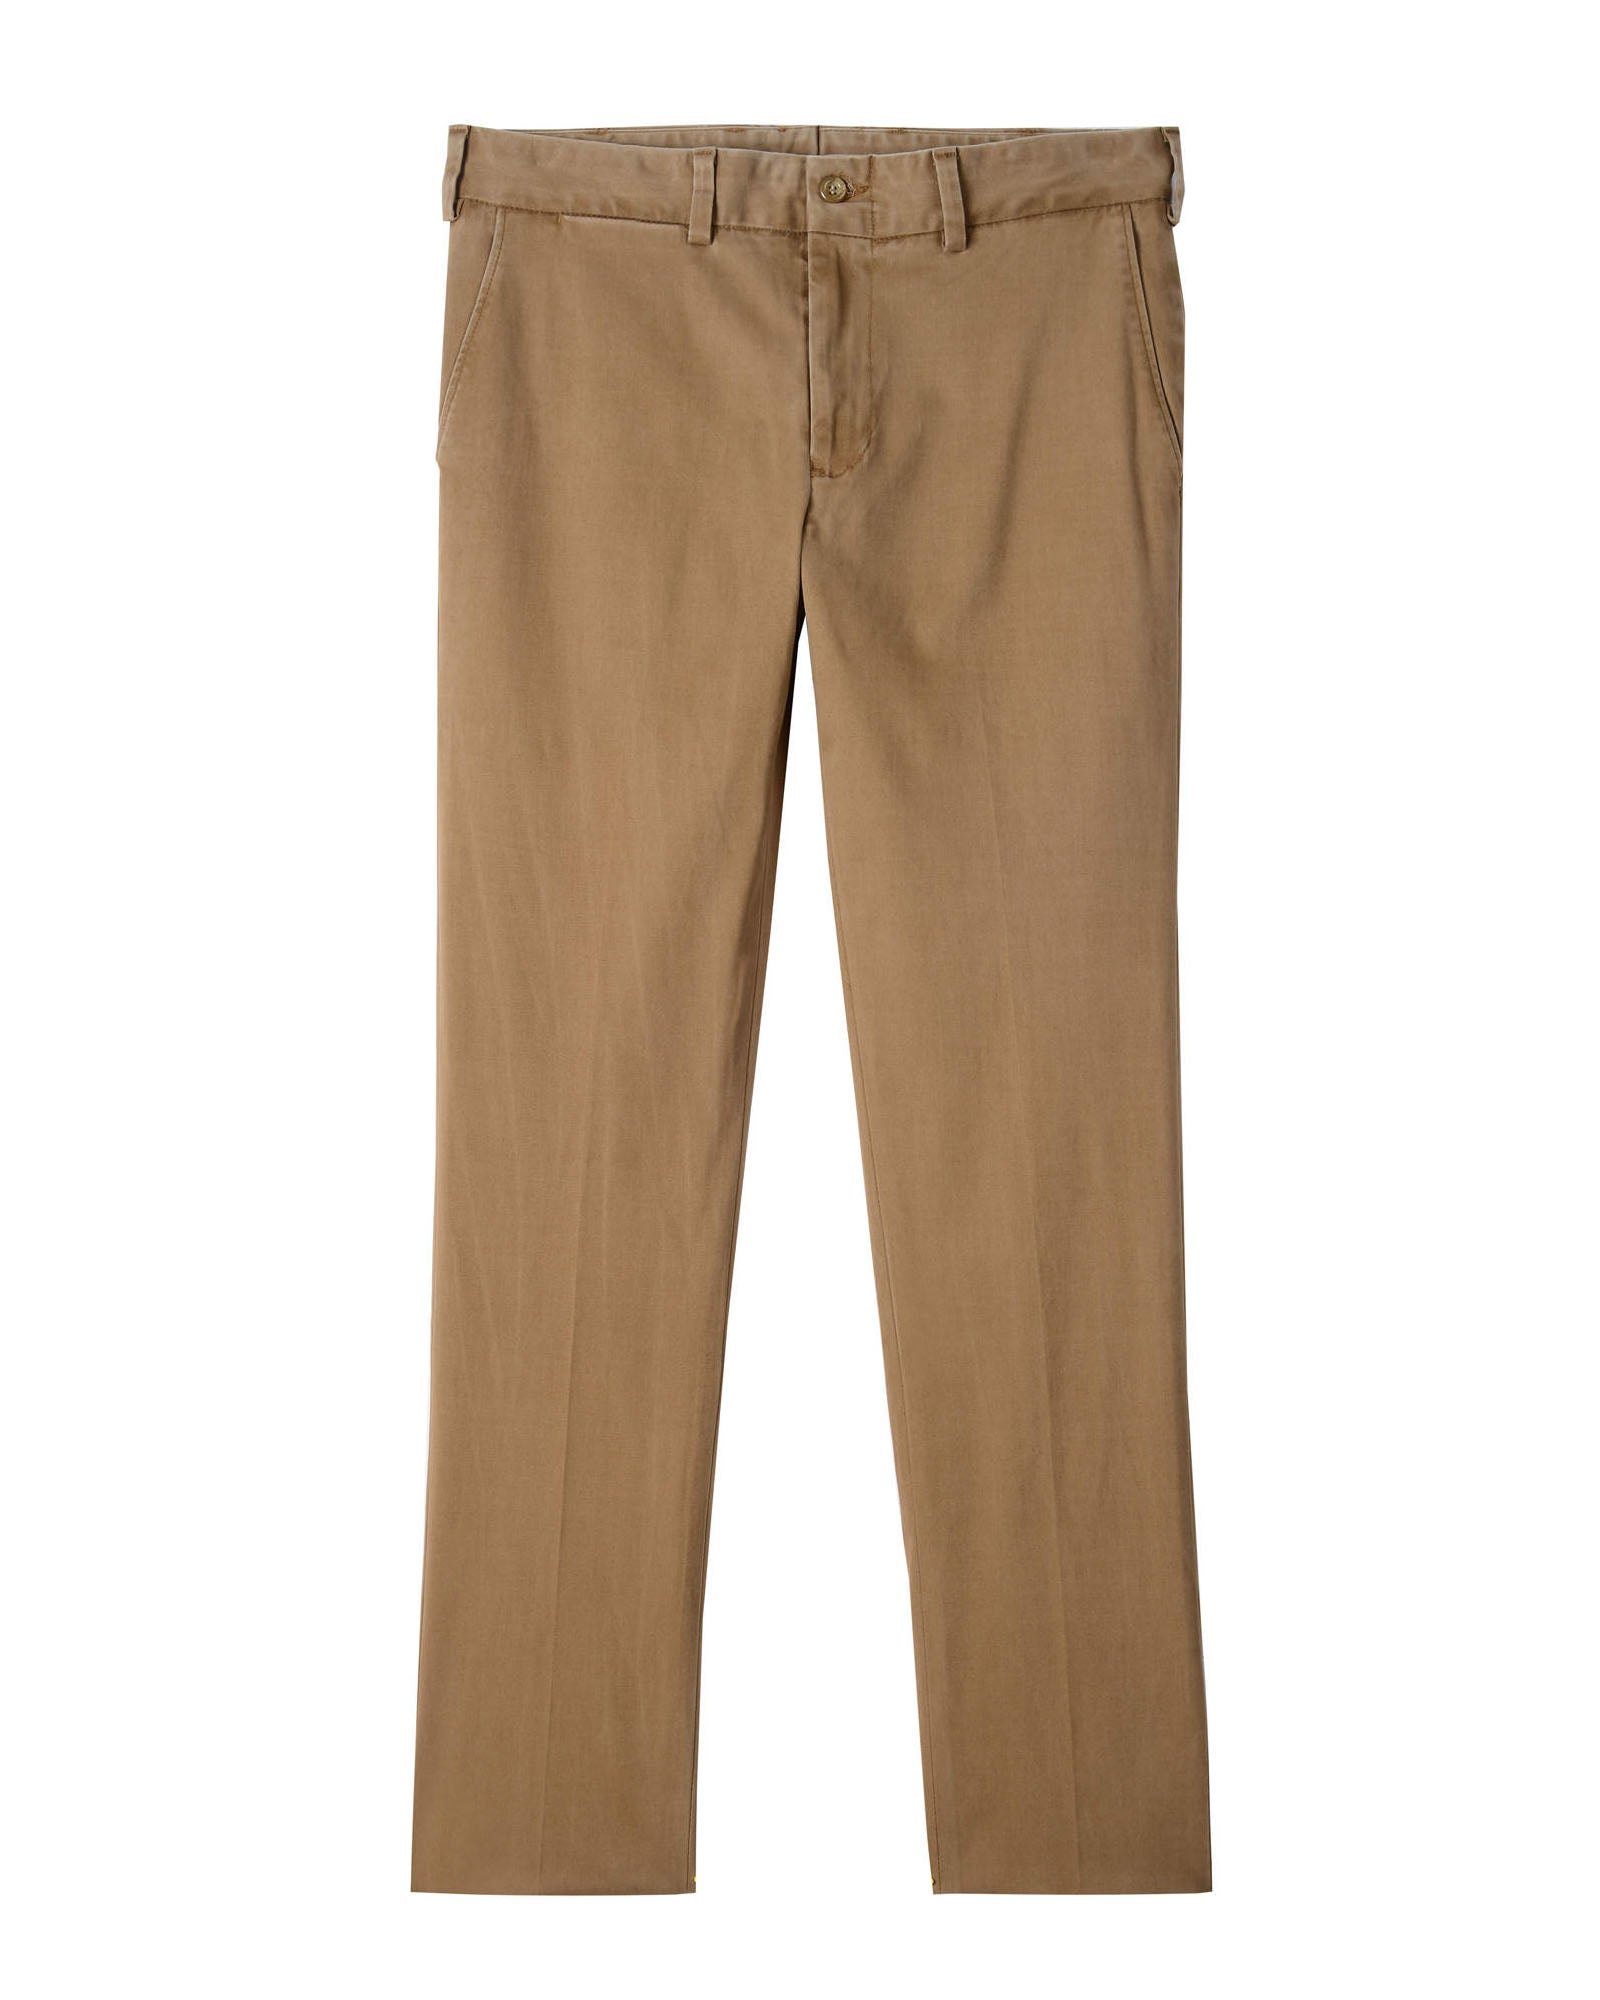 Rainwater's Washed Chino in Khaki